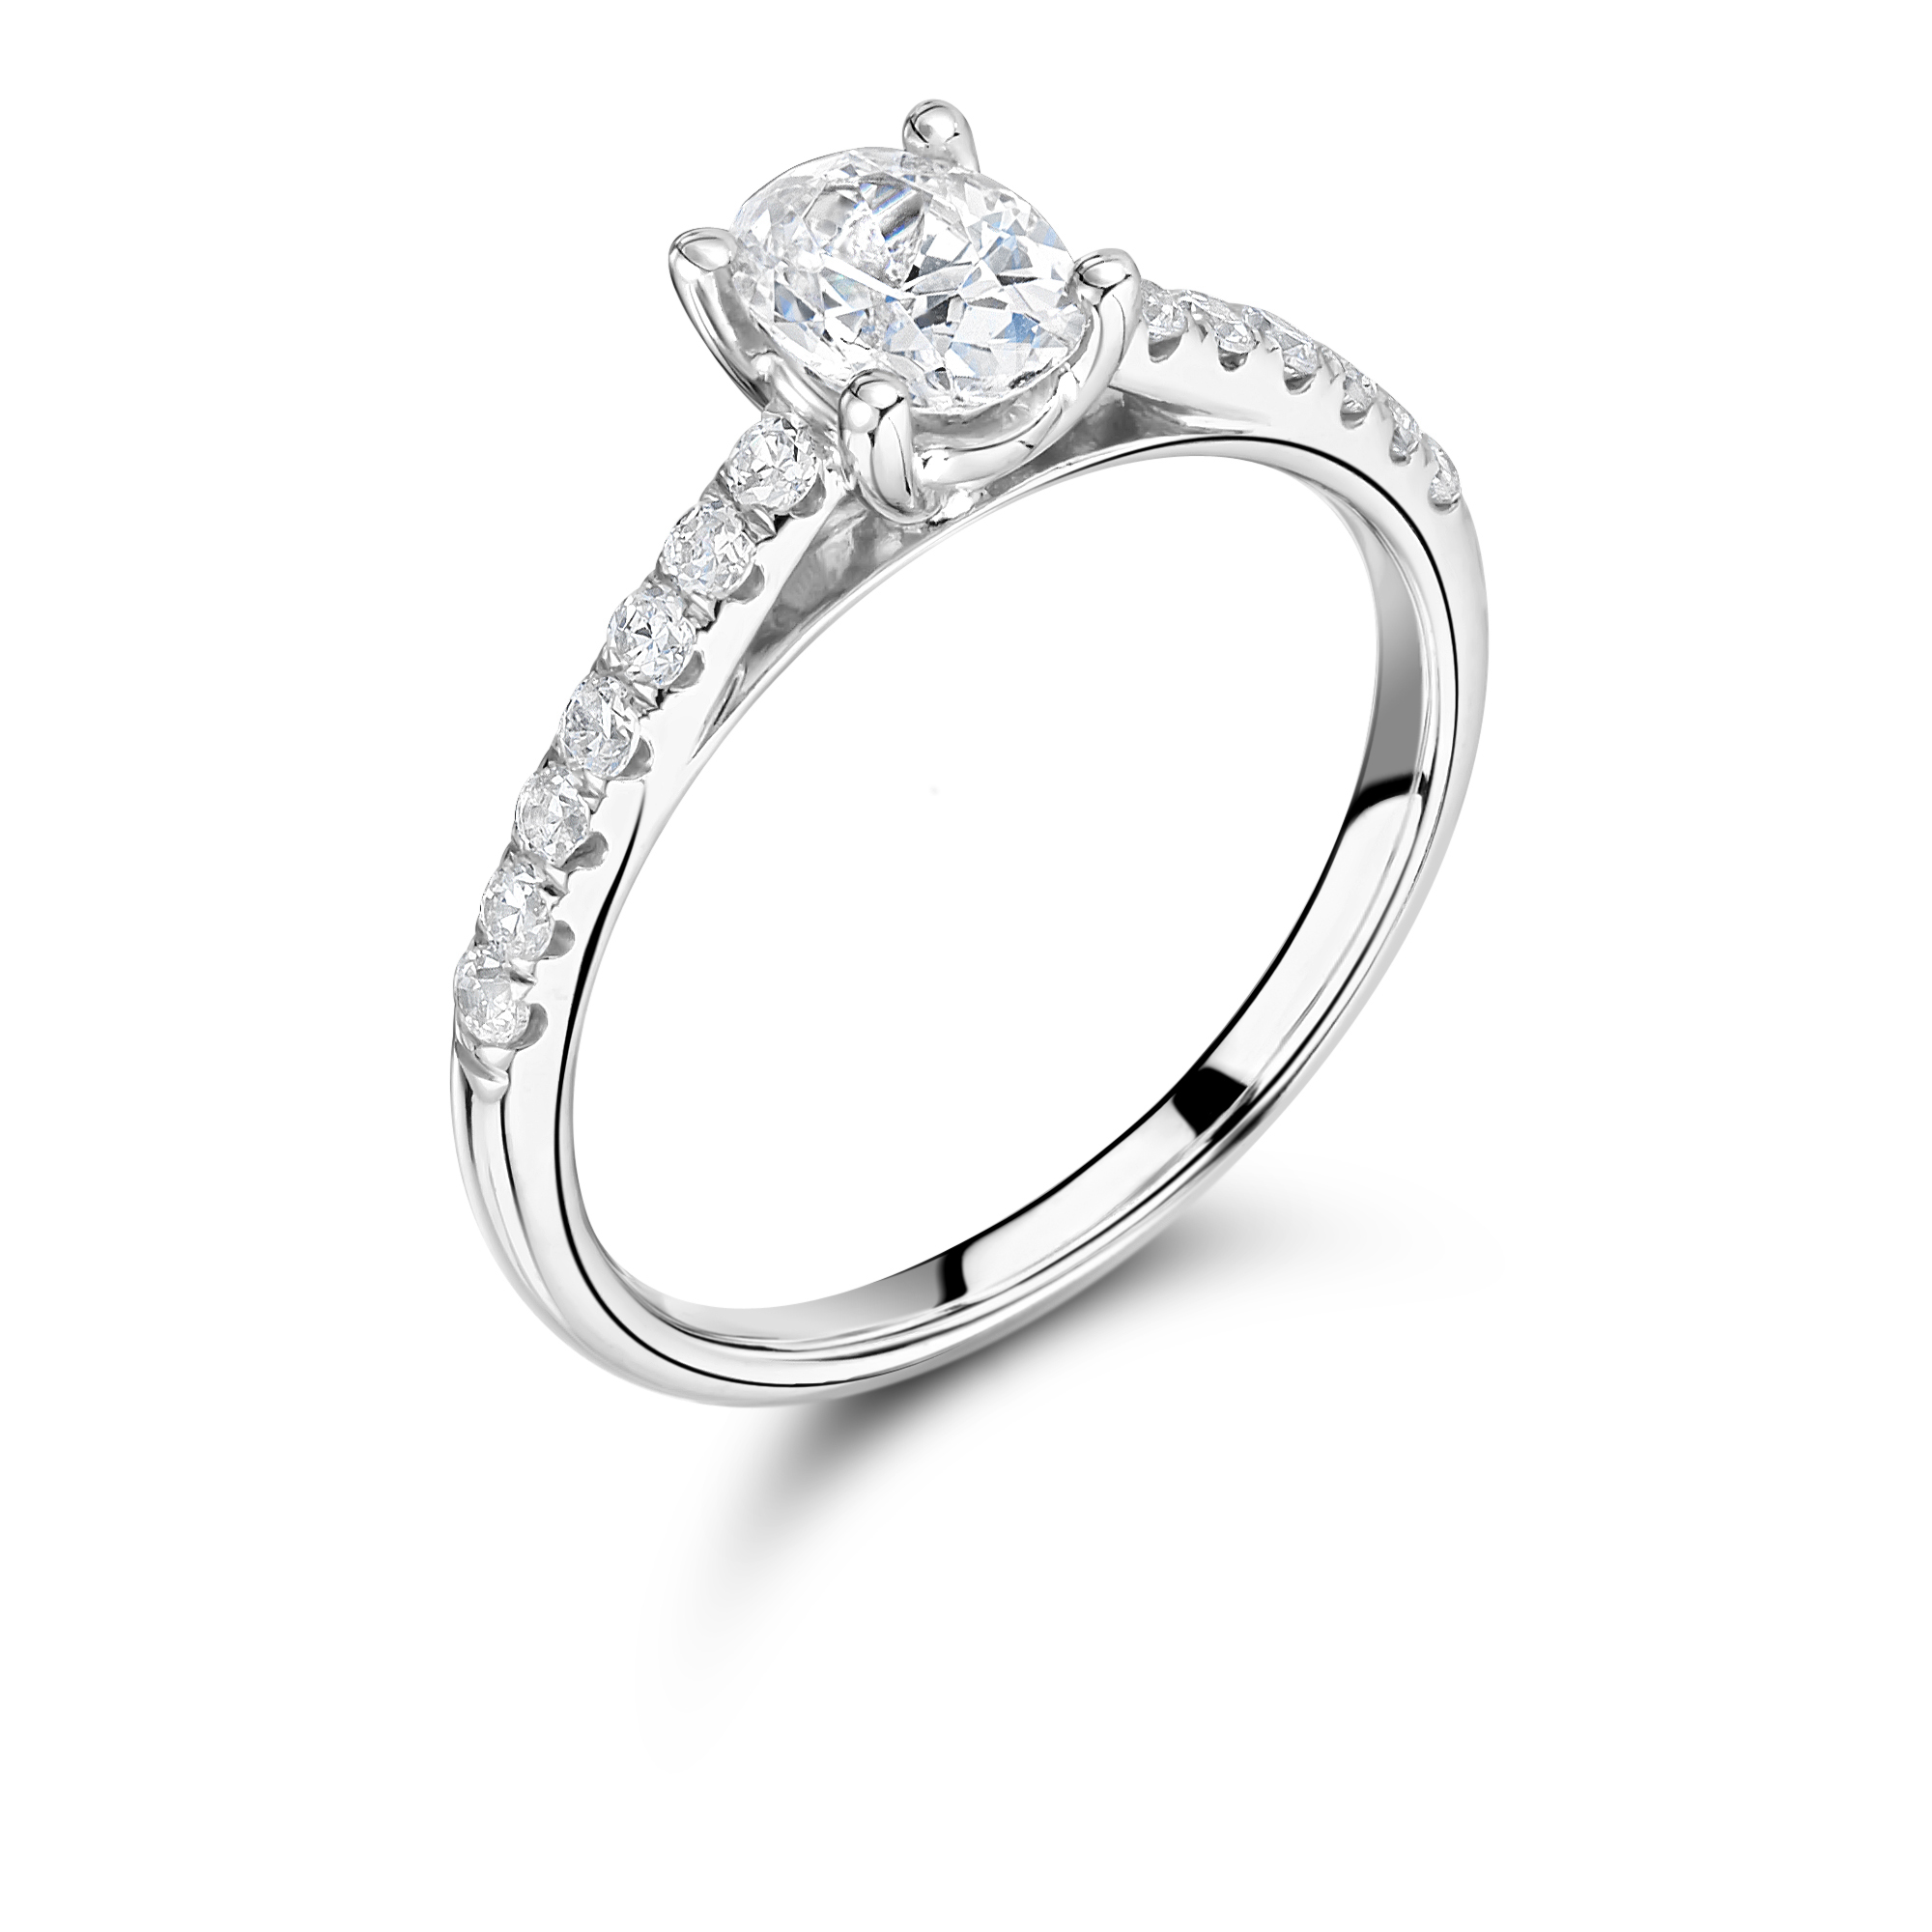 engagement infinity solid ring wedding lovely white of designers oval top cut diamond